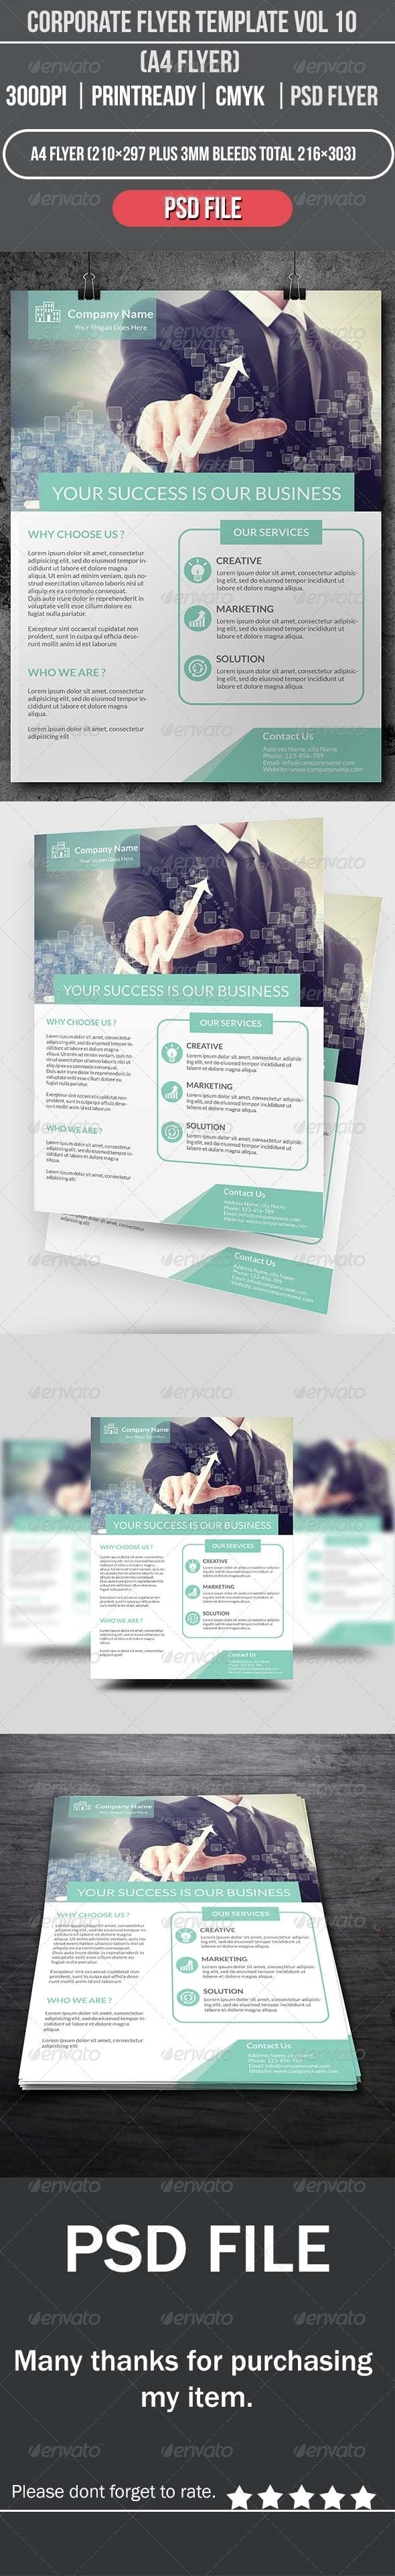 Corporate Flyer Template Vol 10 - Corporate Flyers